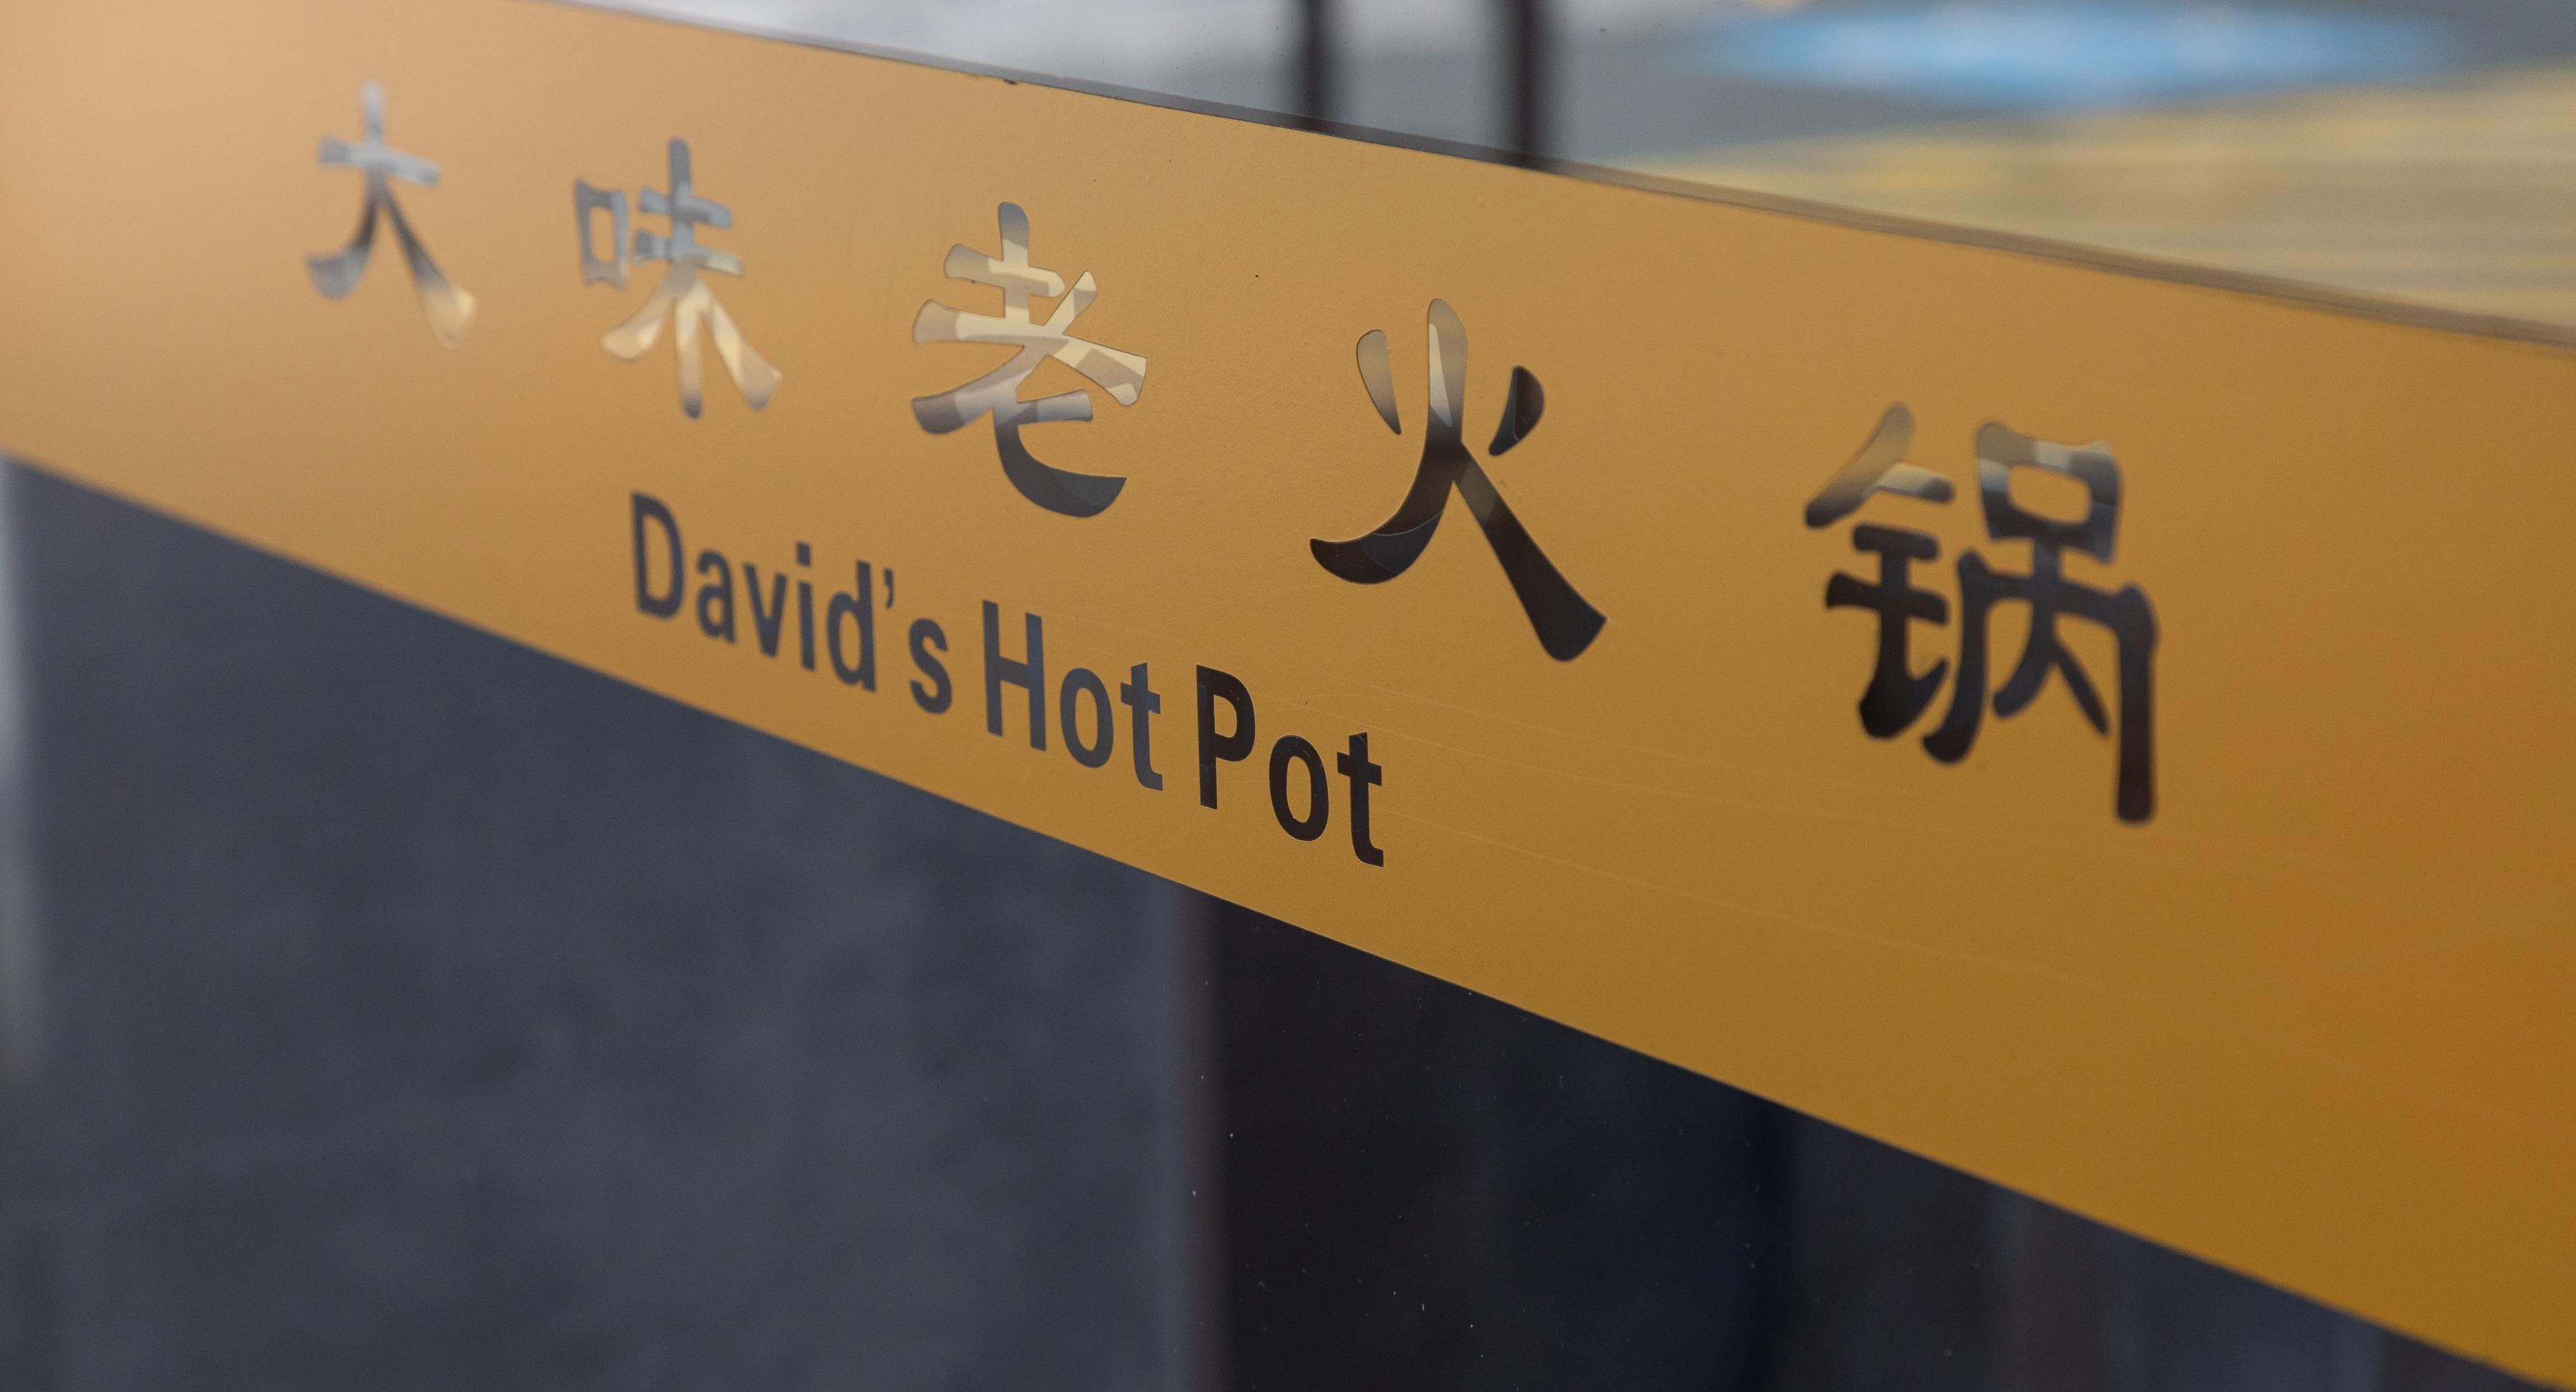 David's Hot Pot - Brisbane Brisbane image 1